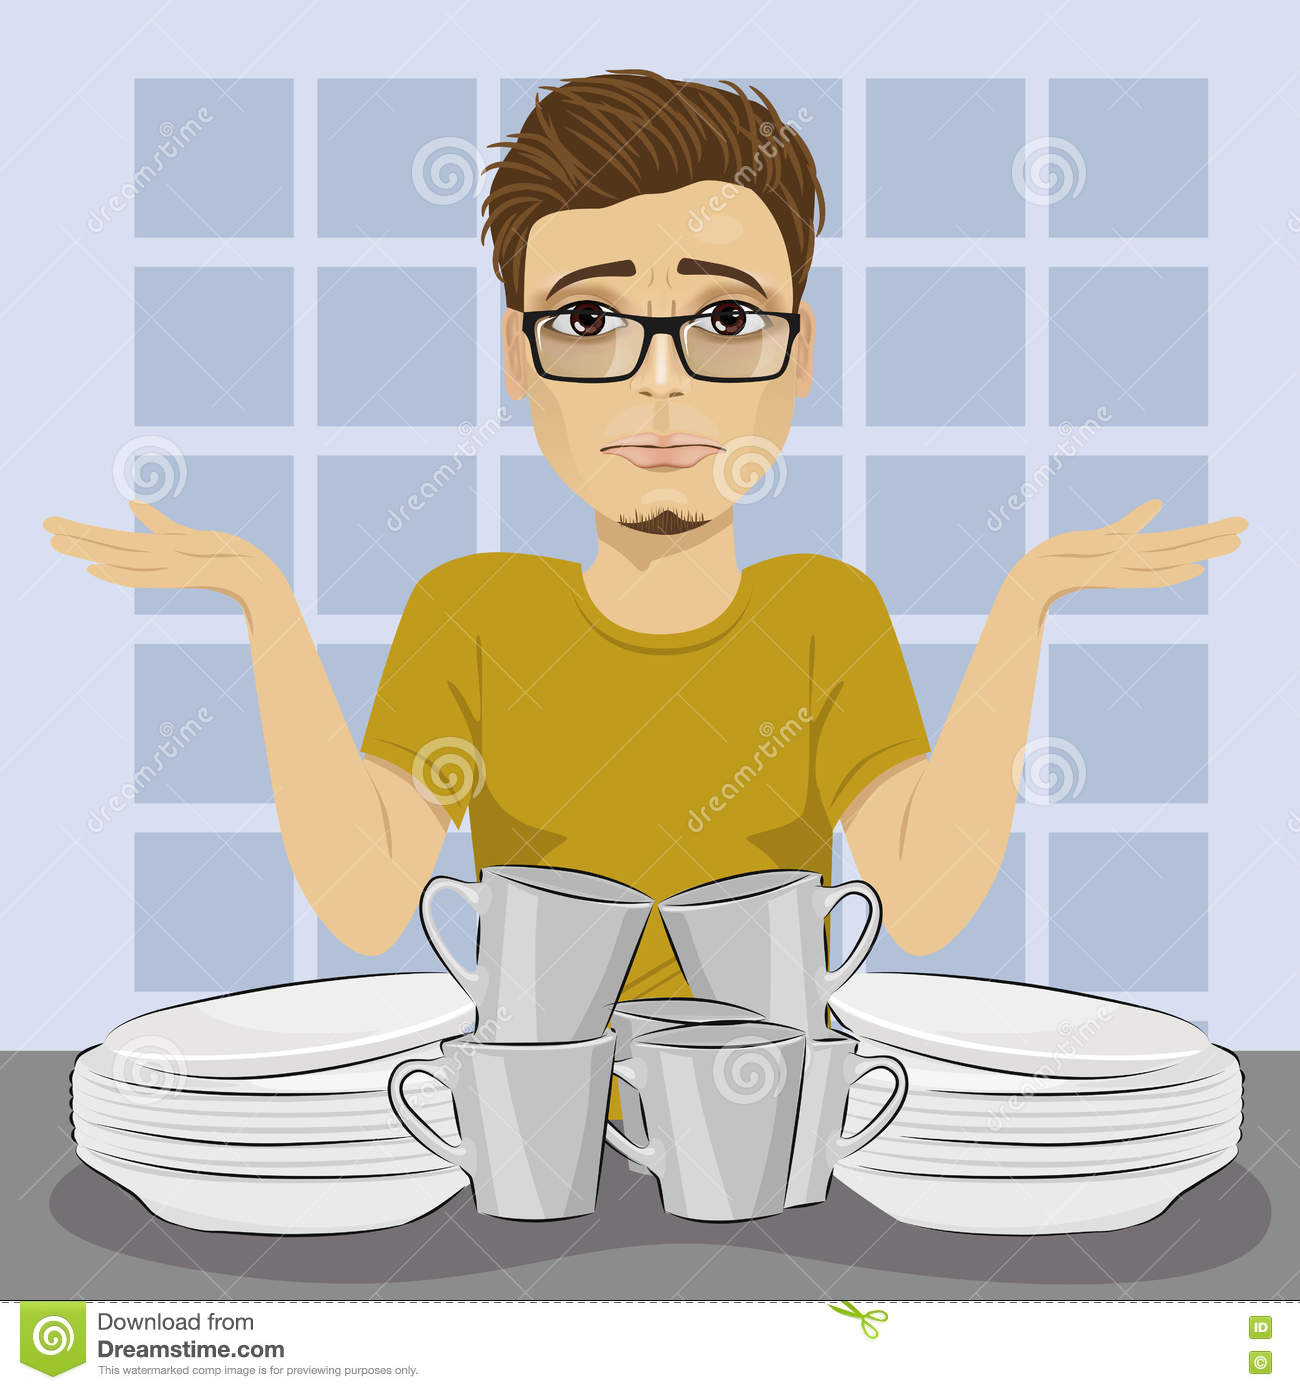 Sad man throws up his hands because of dirty dishes pile needing washing up